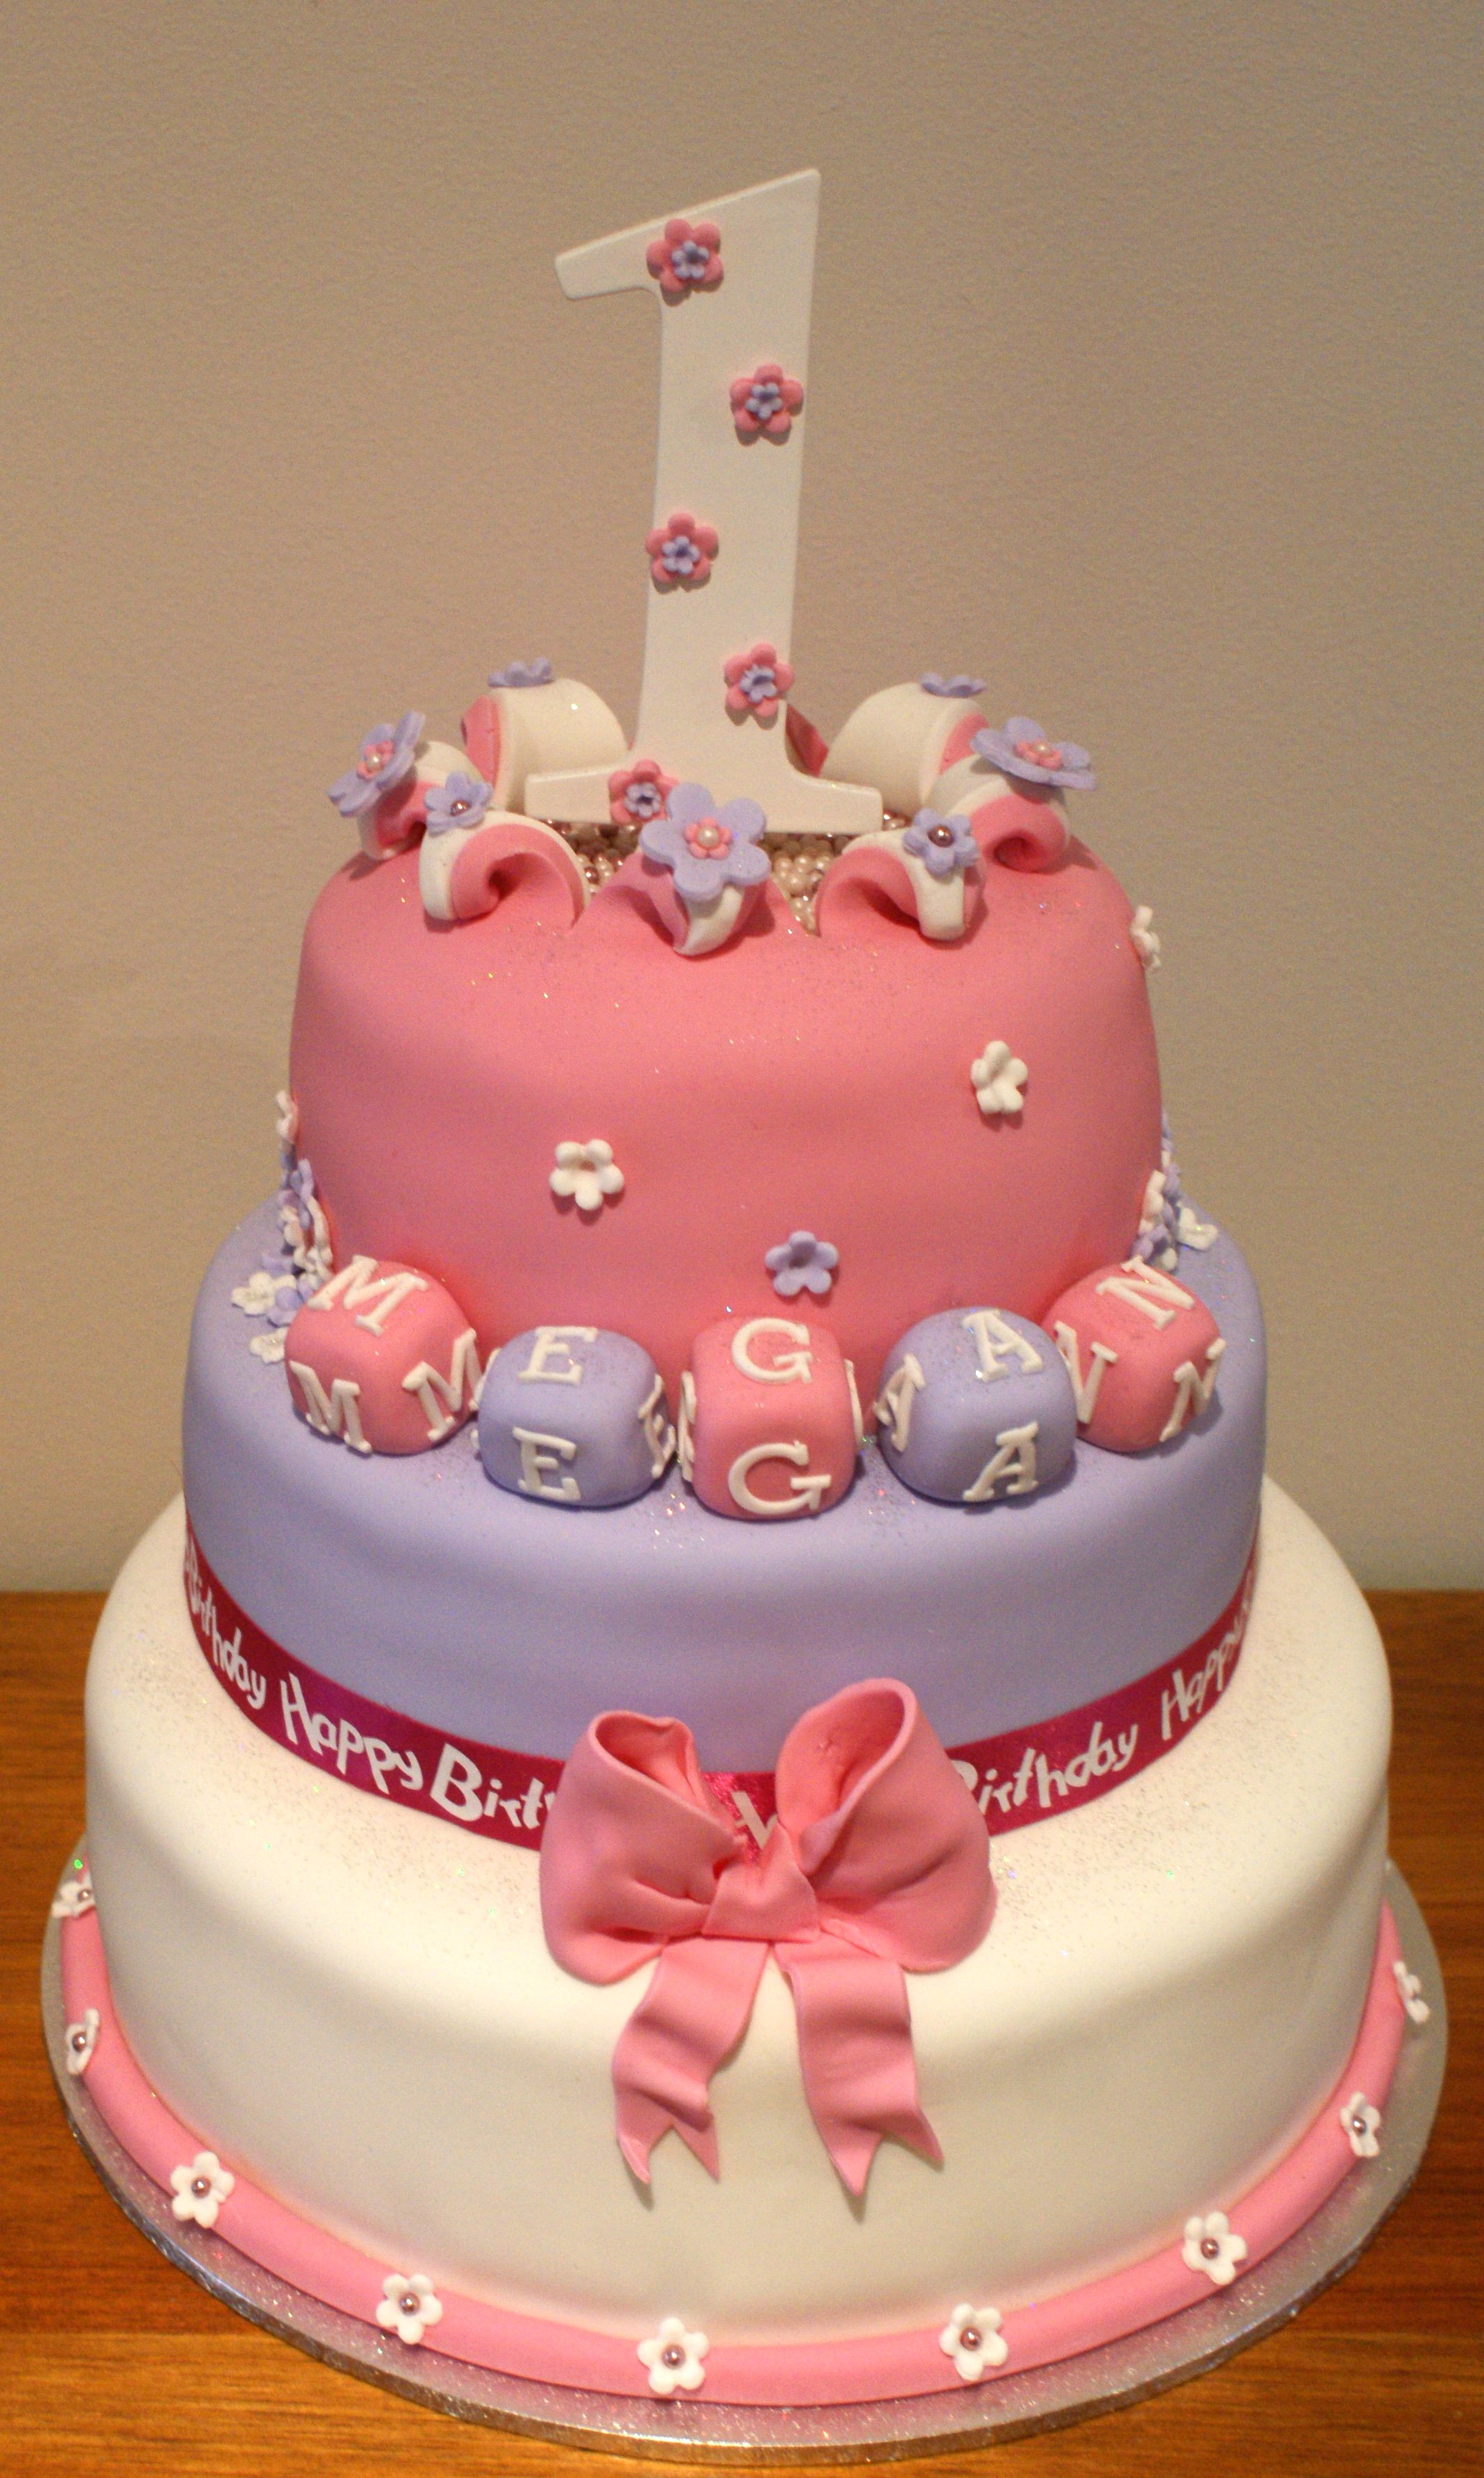 Magnificent Number 1 Birthday Cake Girls Little Girl Birthday Cakes Funny Birthday Cards Online Bapapcheapnameinfo